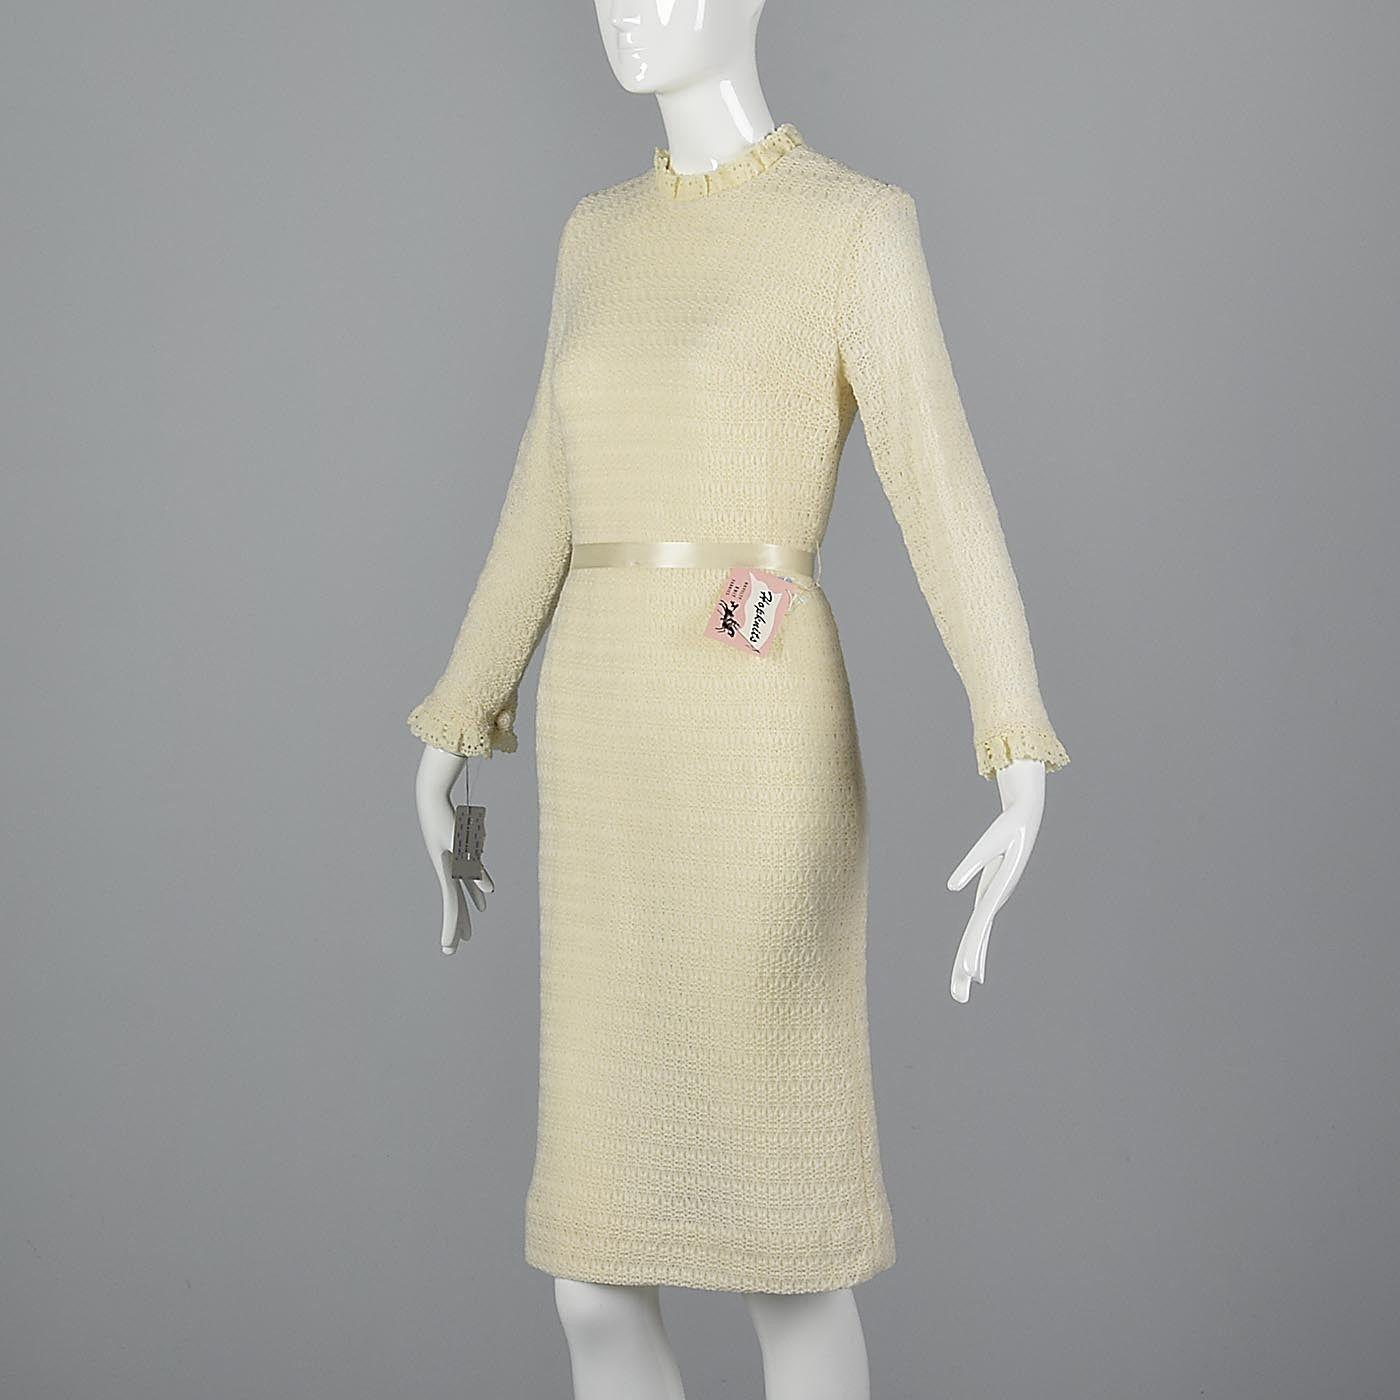 1960s Deadstock Cream Sweater Dress